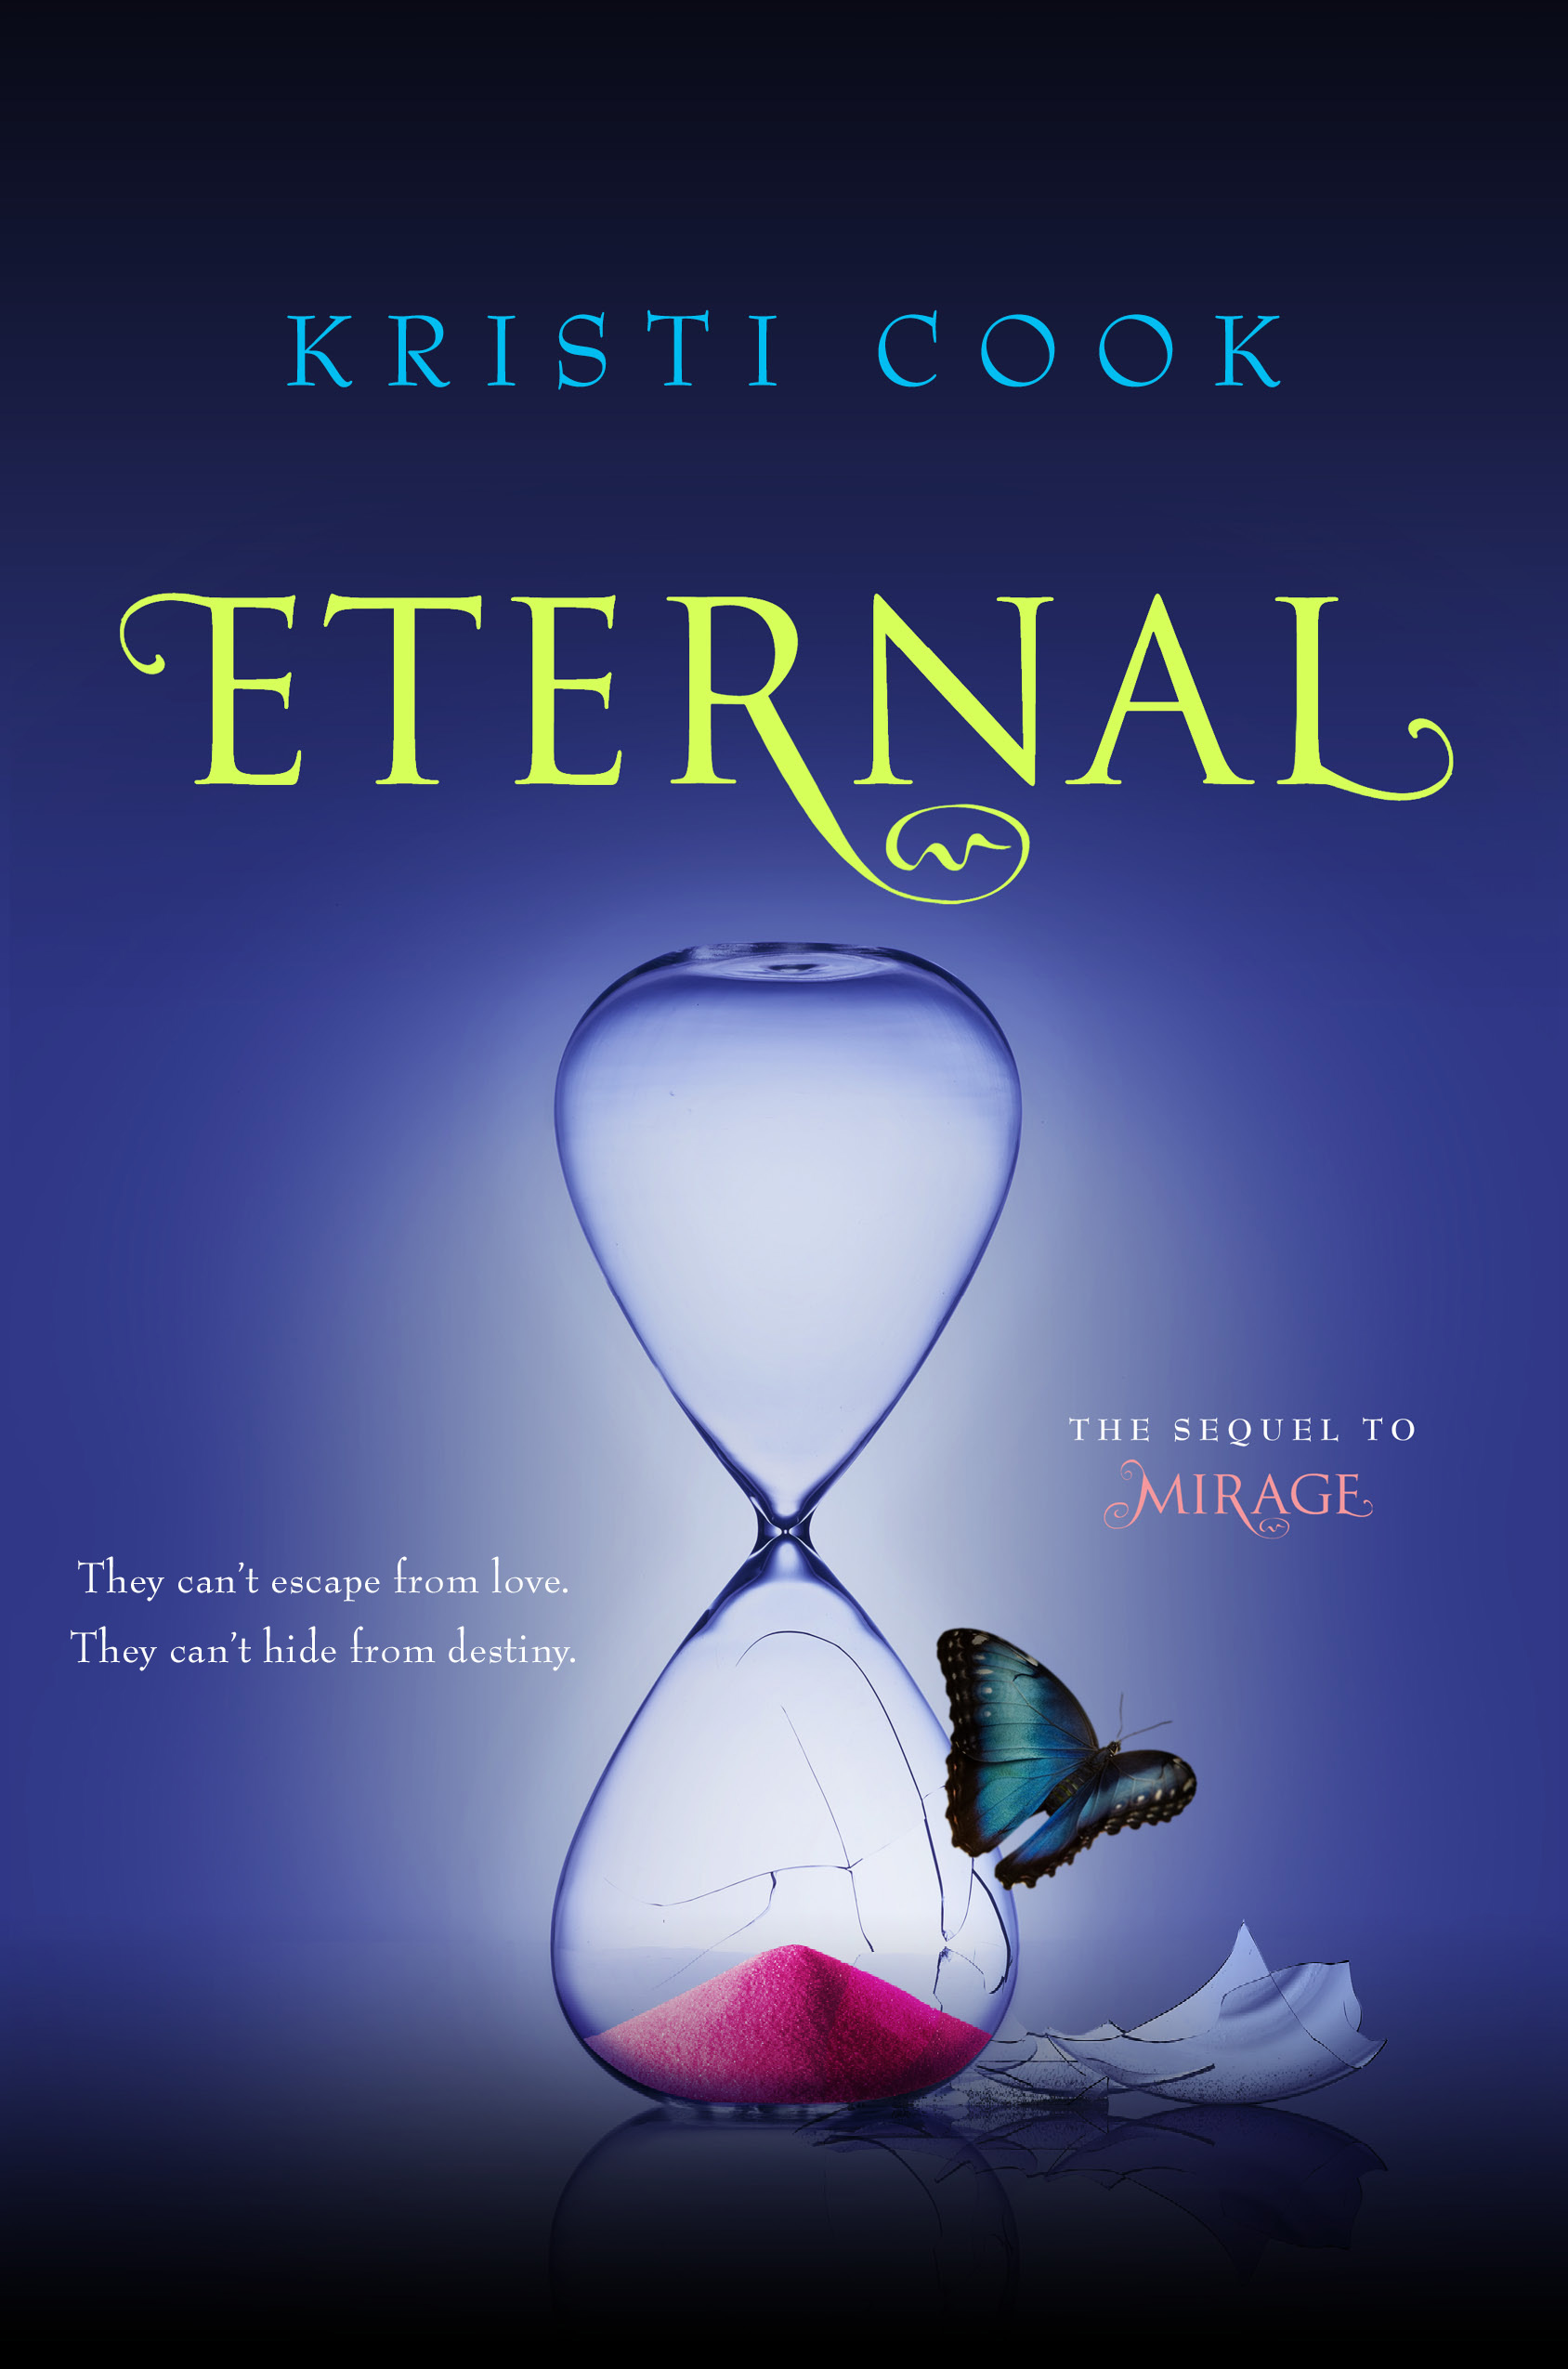 New to You Books: Eternal, Young Adult Vampire Romance by Kristi Cook (PRIZE)